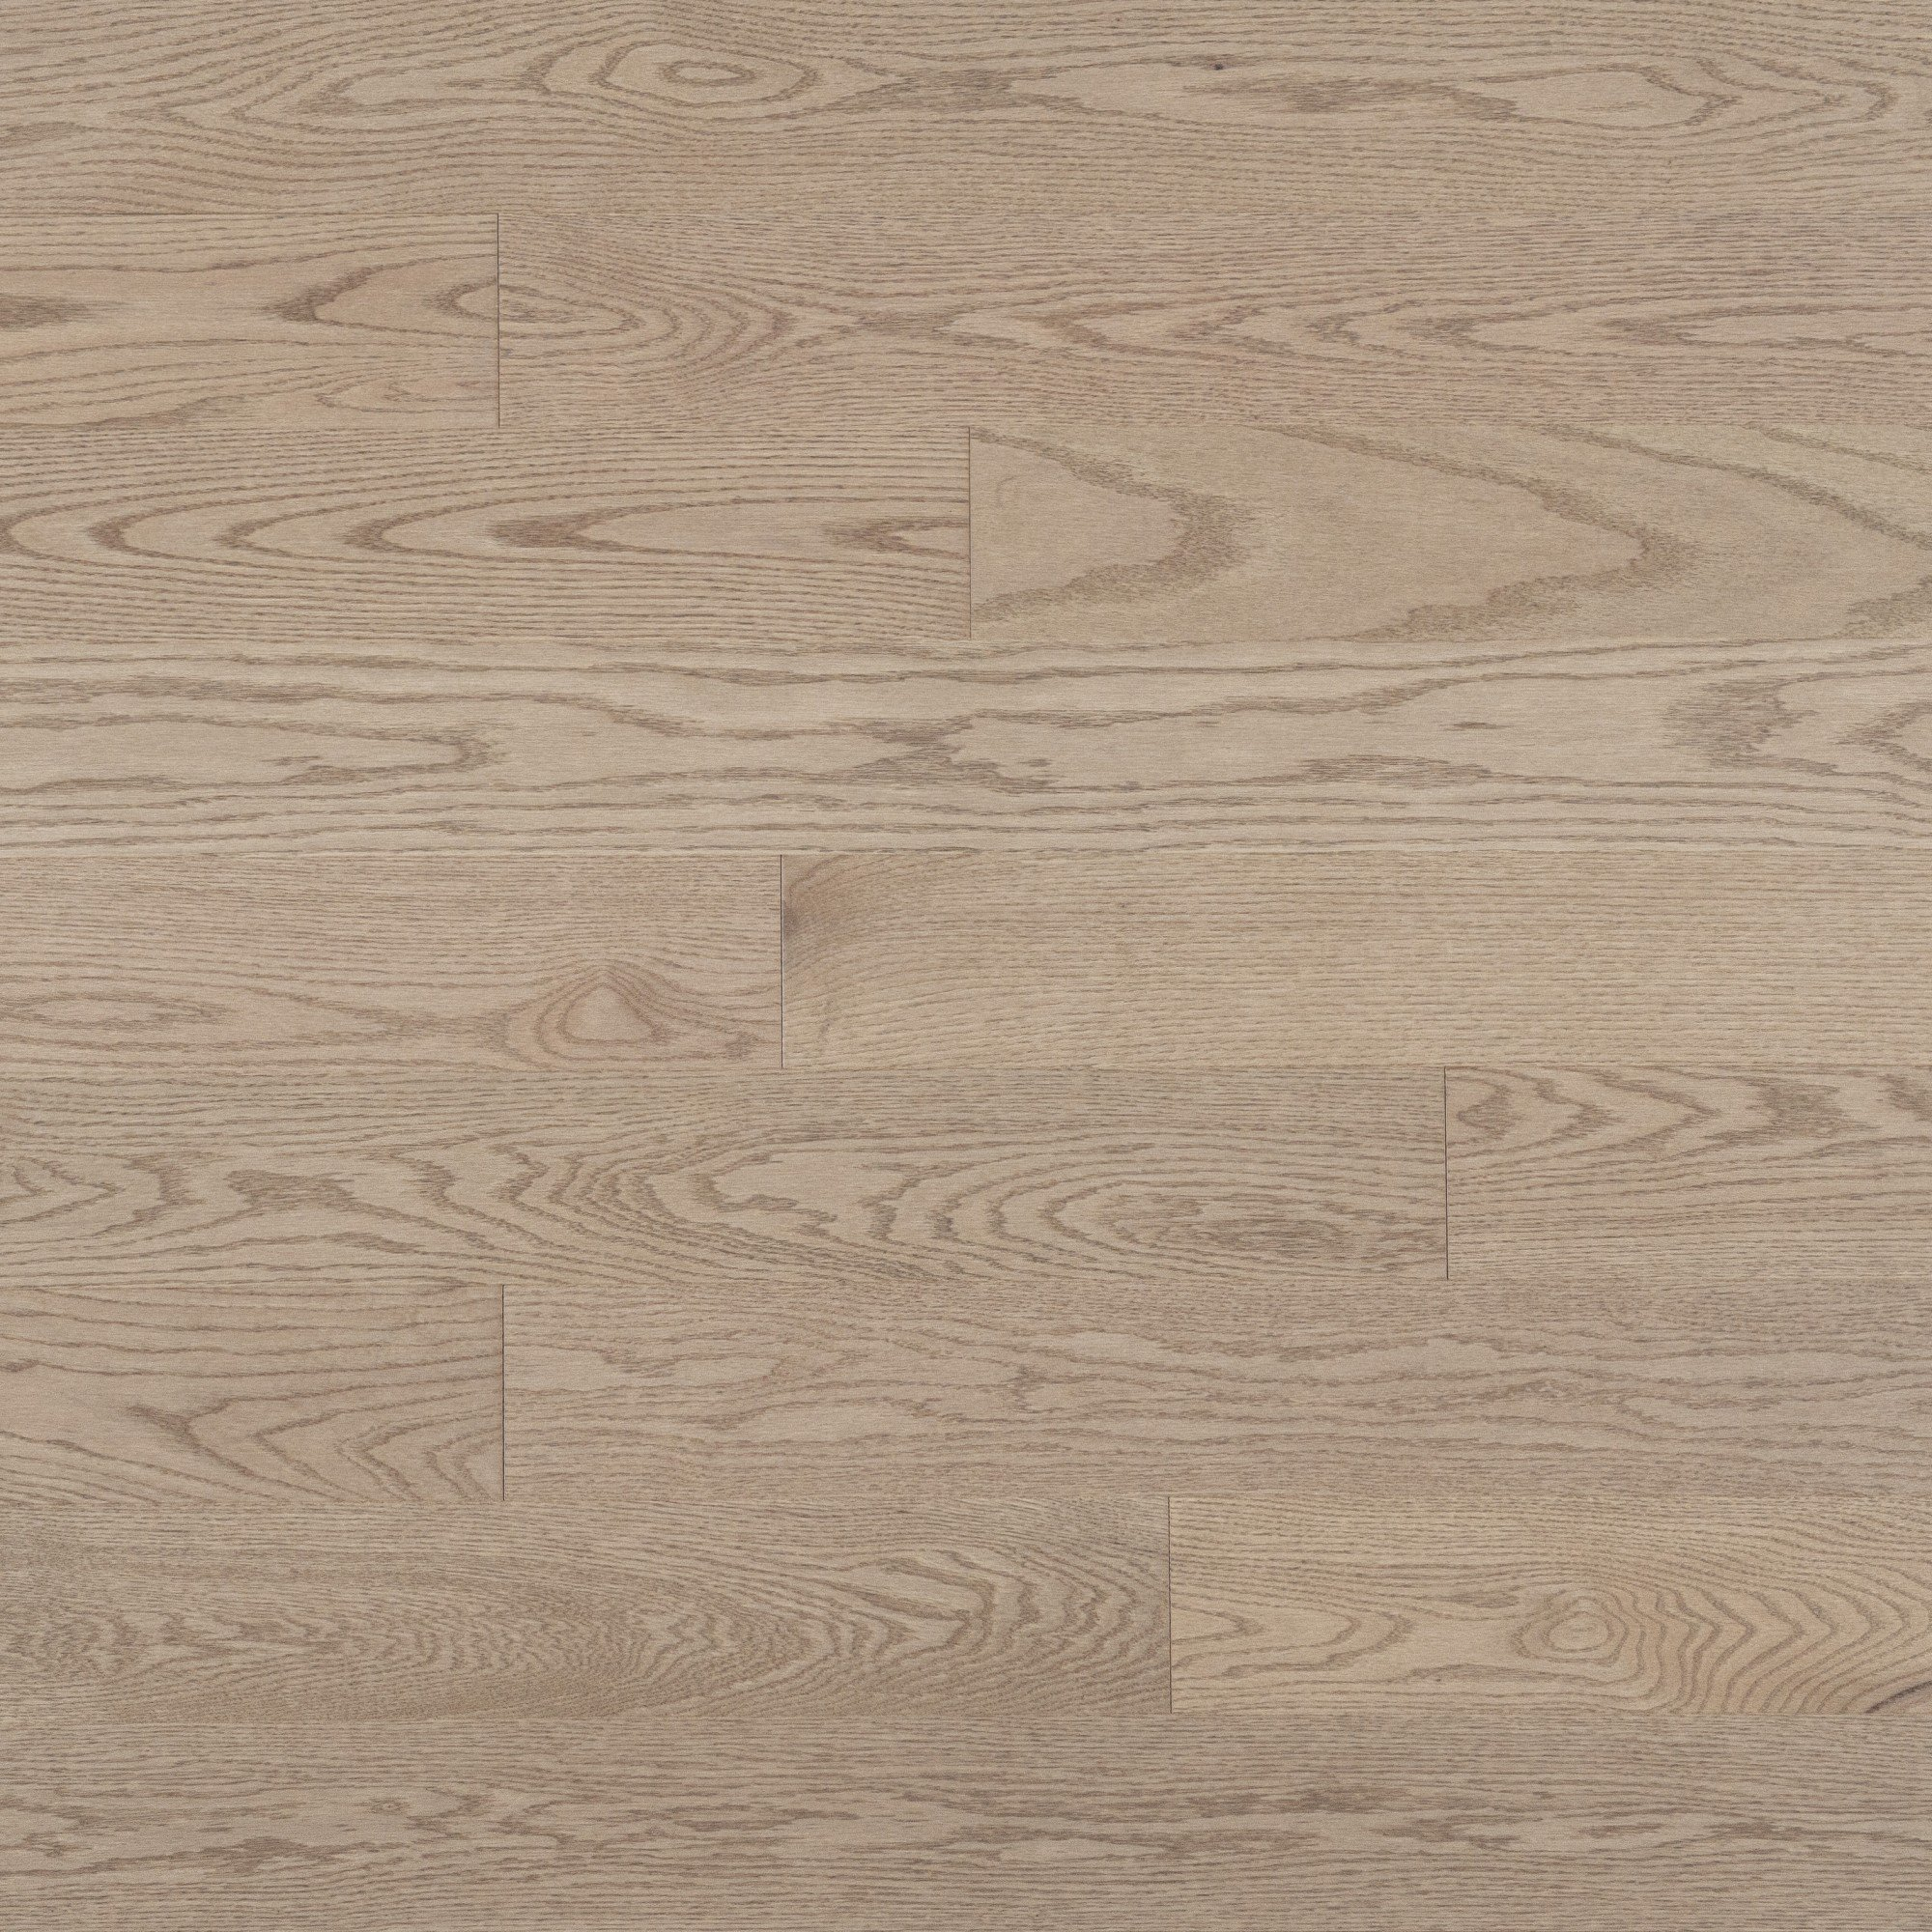 Admiration red oak rio mirage hardwood floors for Hardwood floors 60 minutes